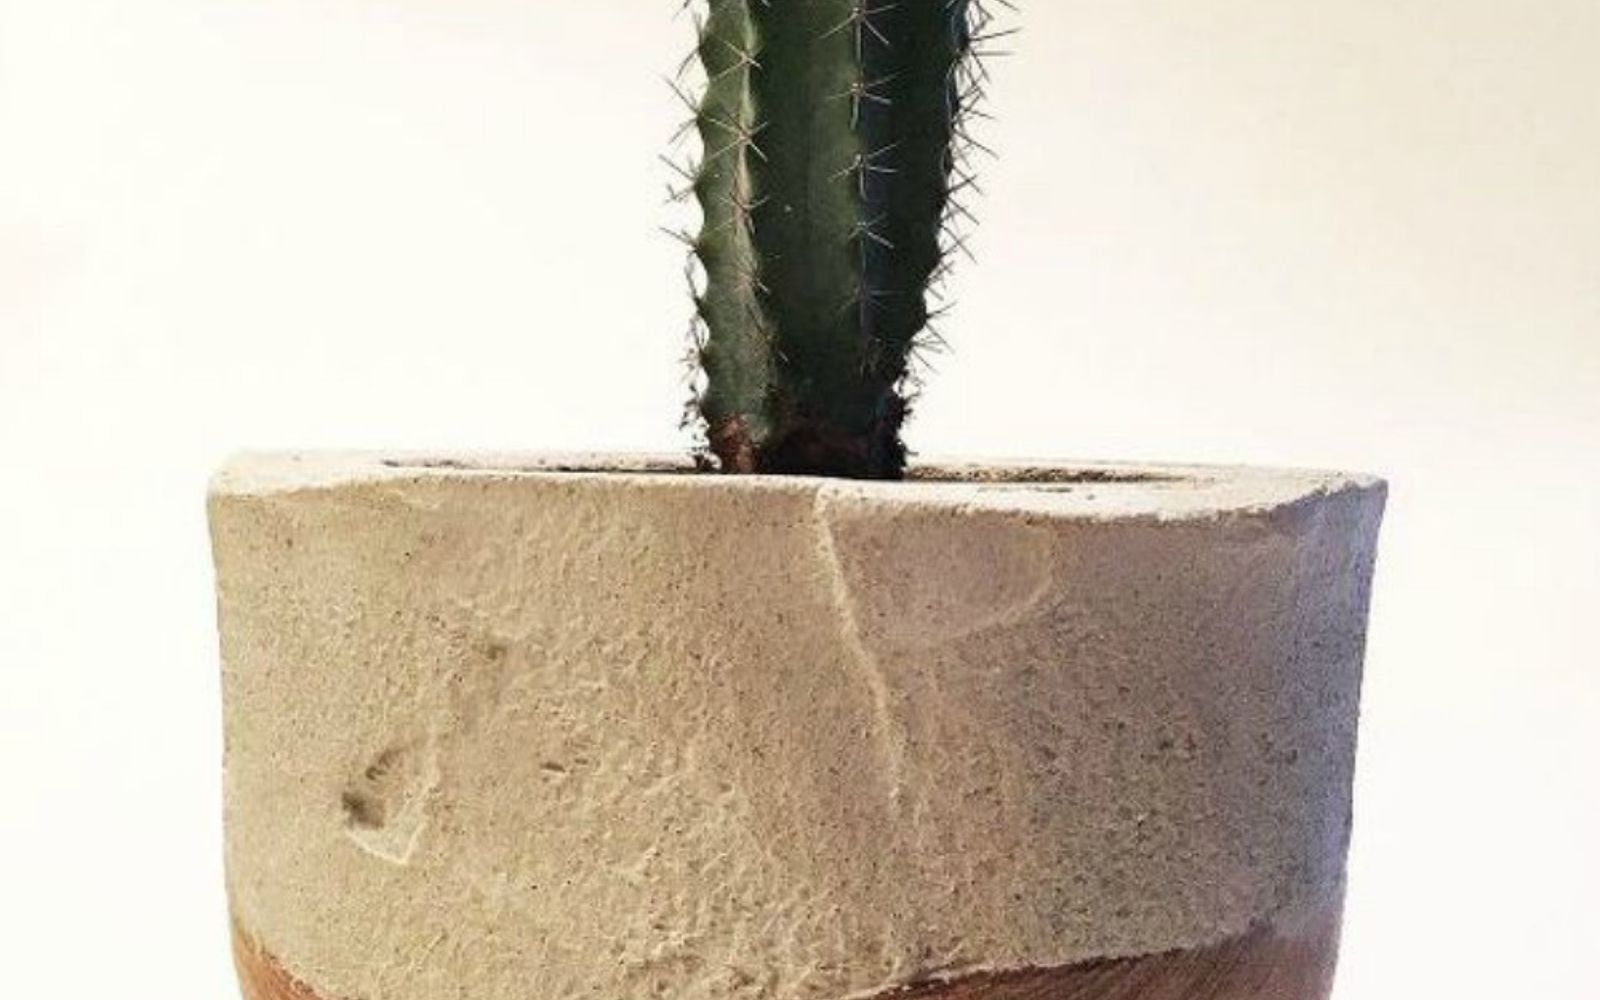 s 14 stunning ways to add cement to your home decor, concrete masonry, home decor, Add it to a wood bowl to use as planters